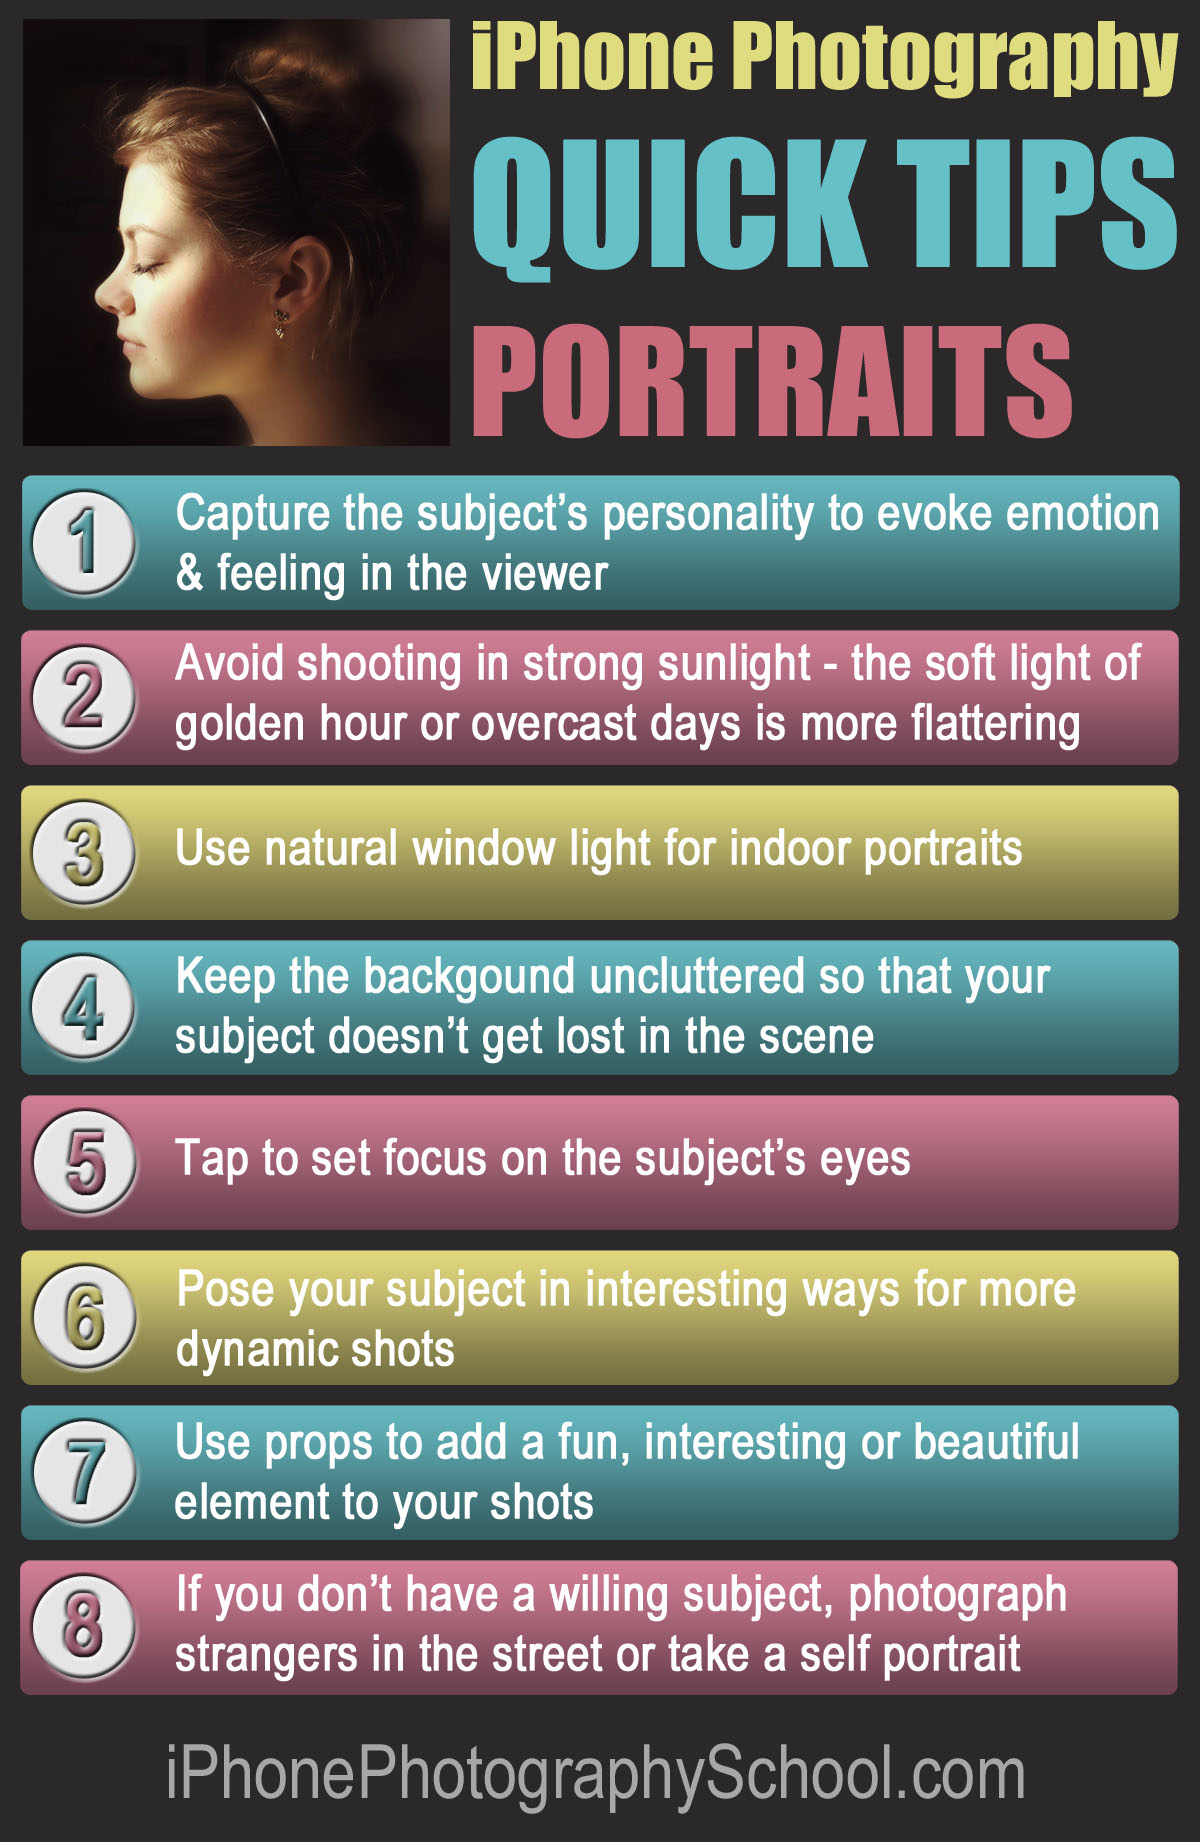 Tips To Do Your Makeup For Graduation: 8 Quick Tips For Taking Beautiful IPhone Portrait Photos